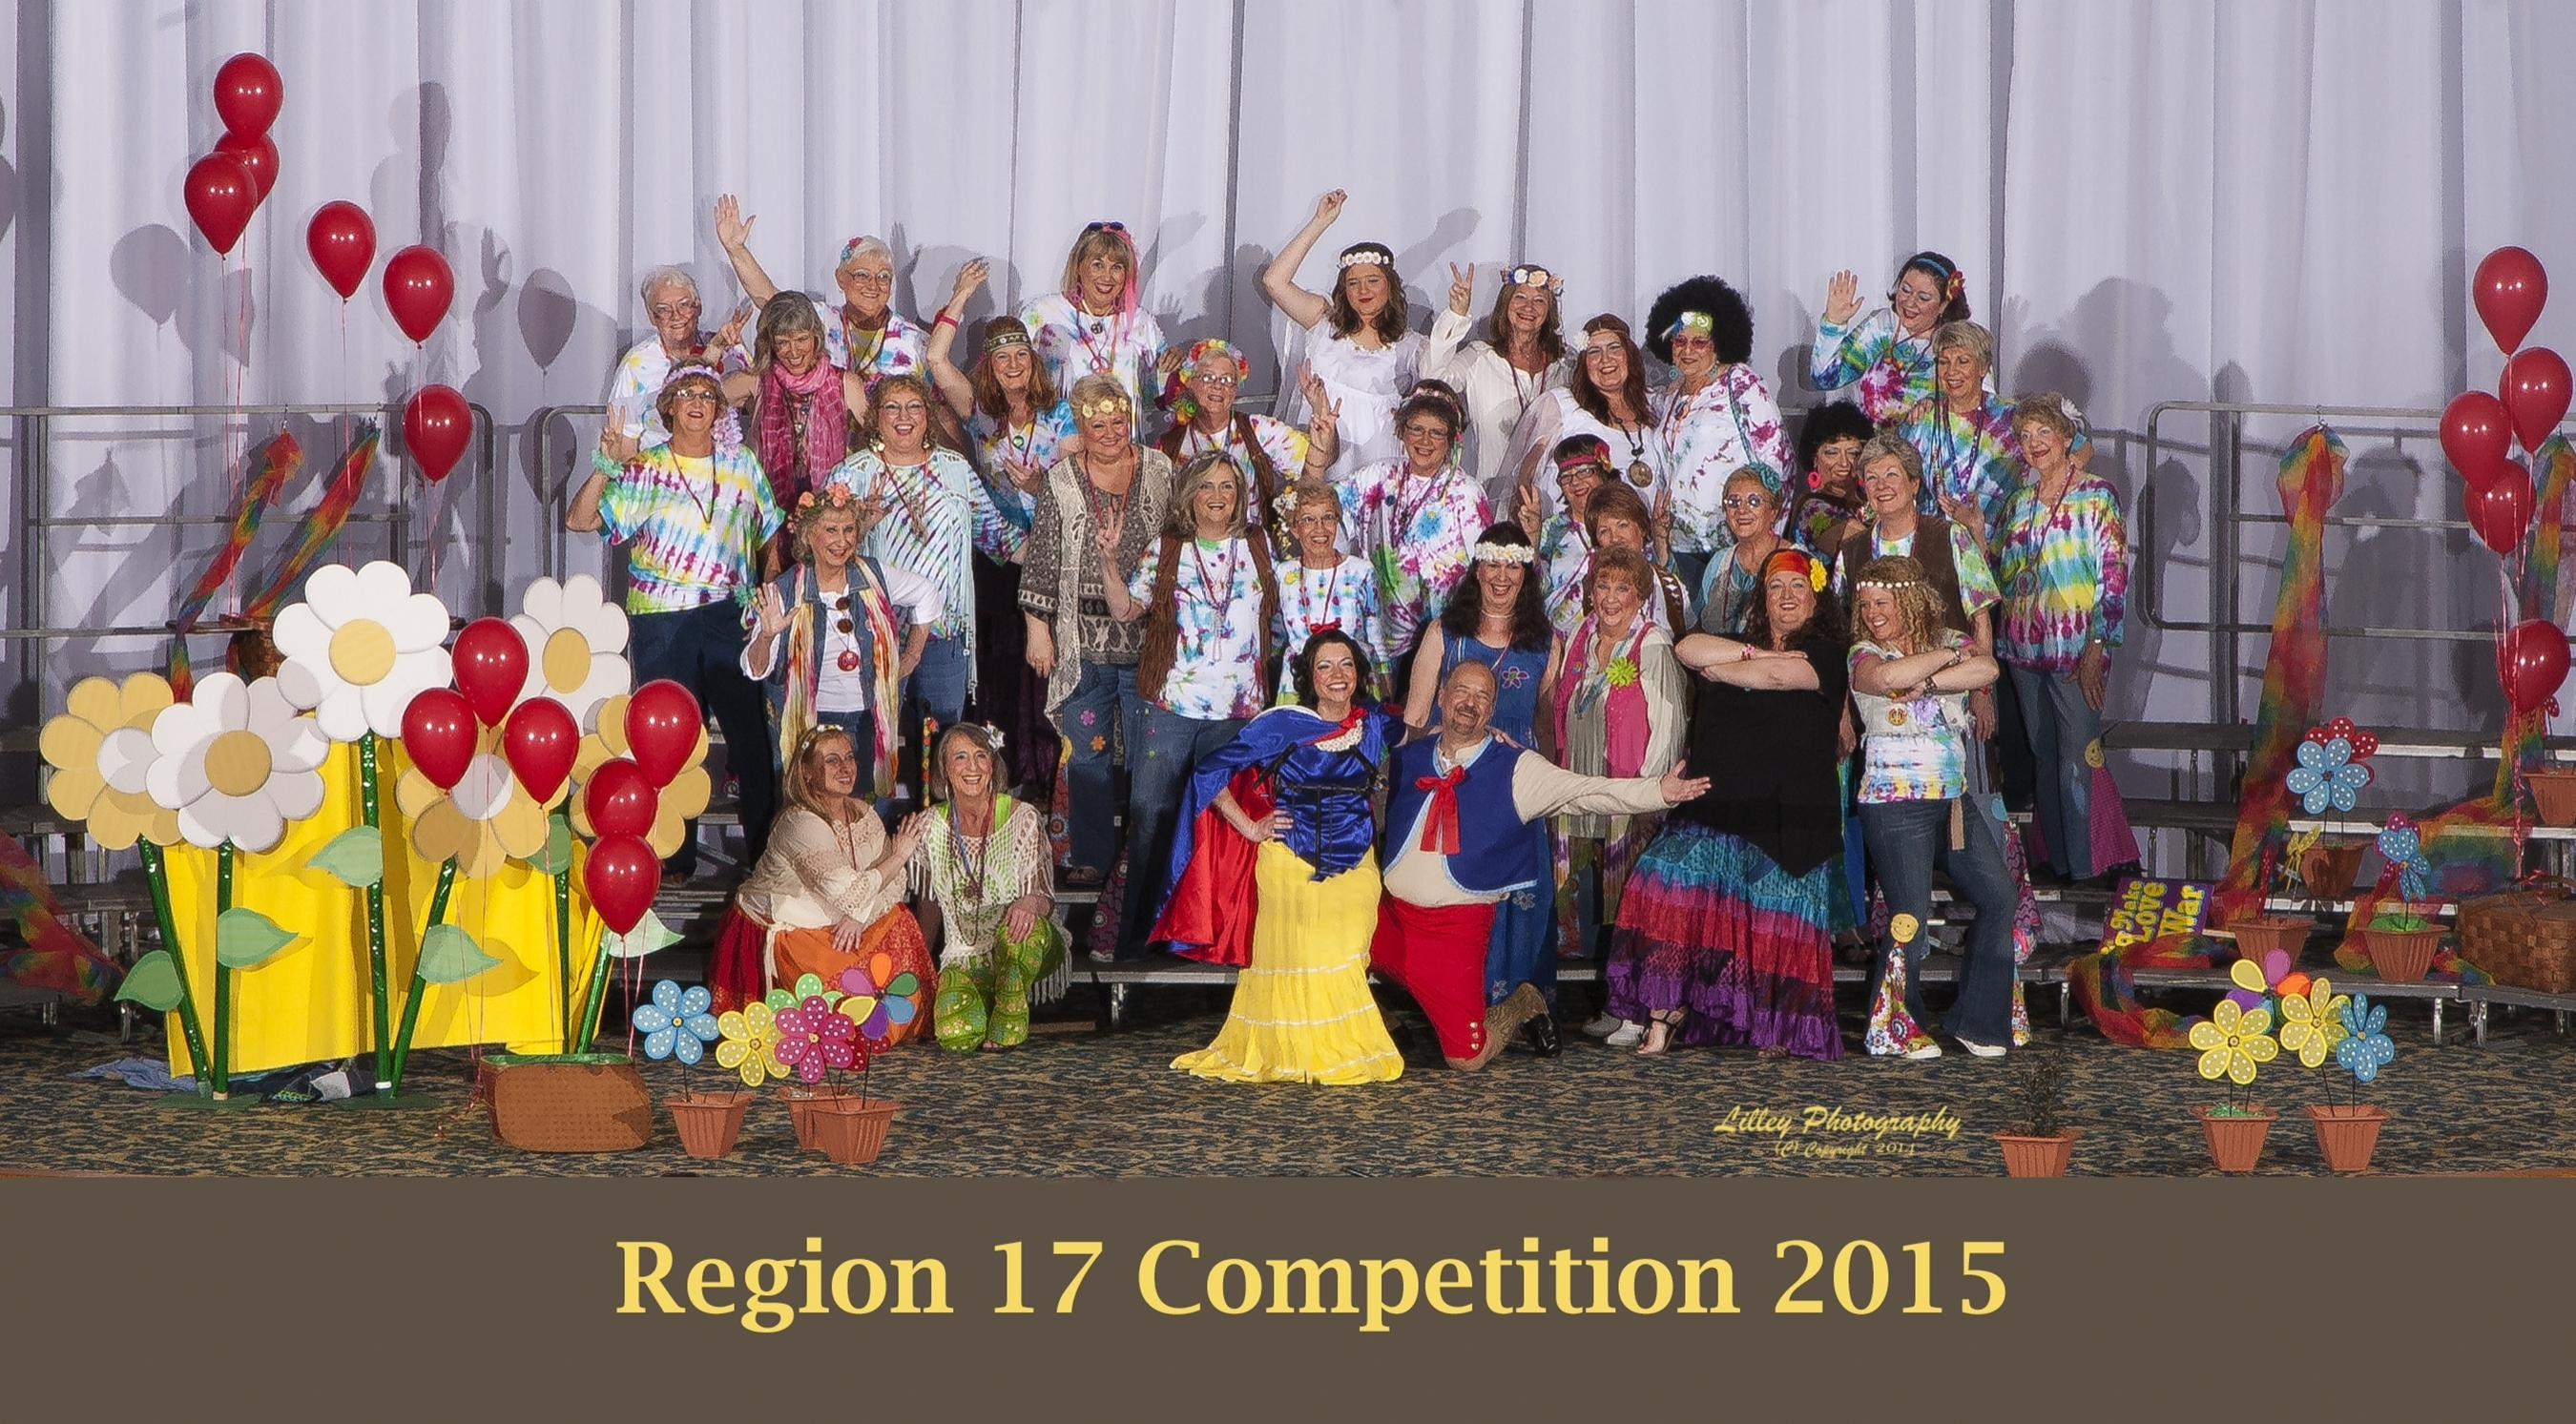 lrc 2015 FULL STAGE CROP.JPG